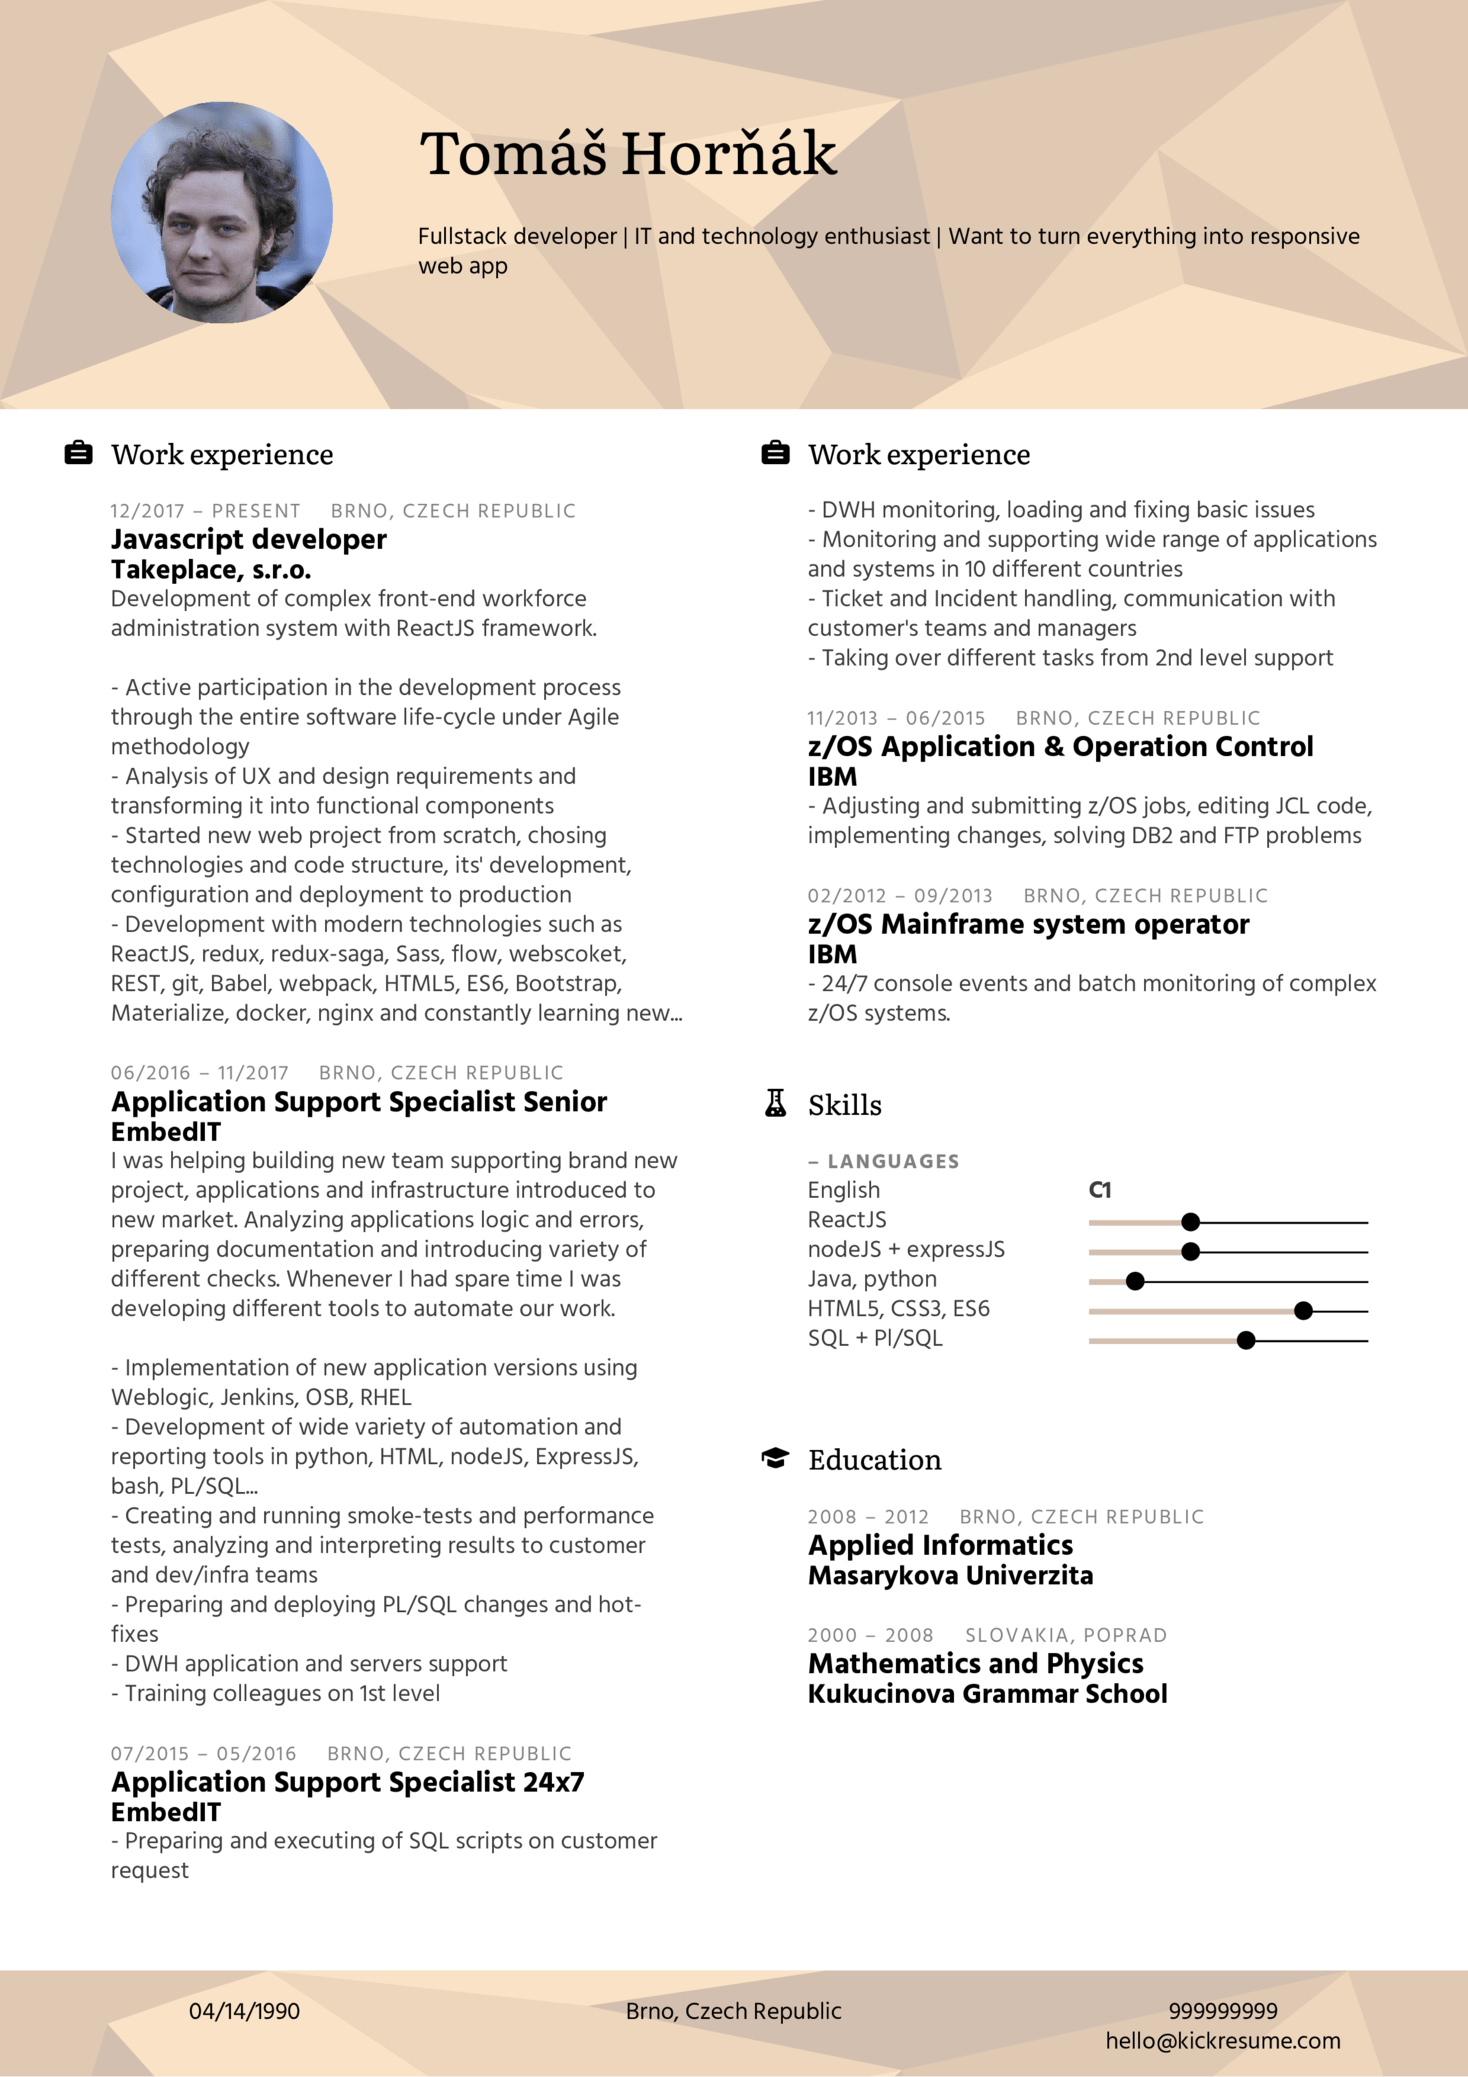 resume examples by real people  takeplace java script web